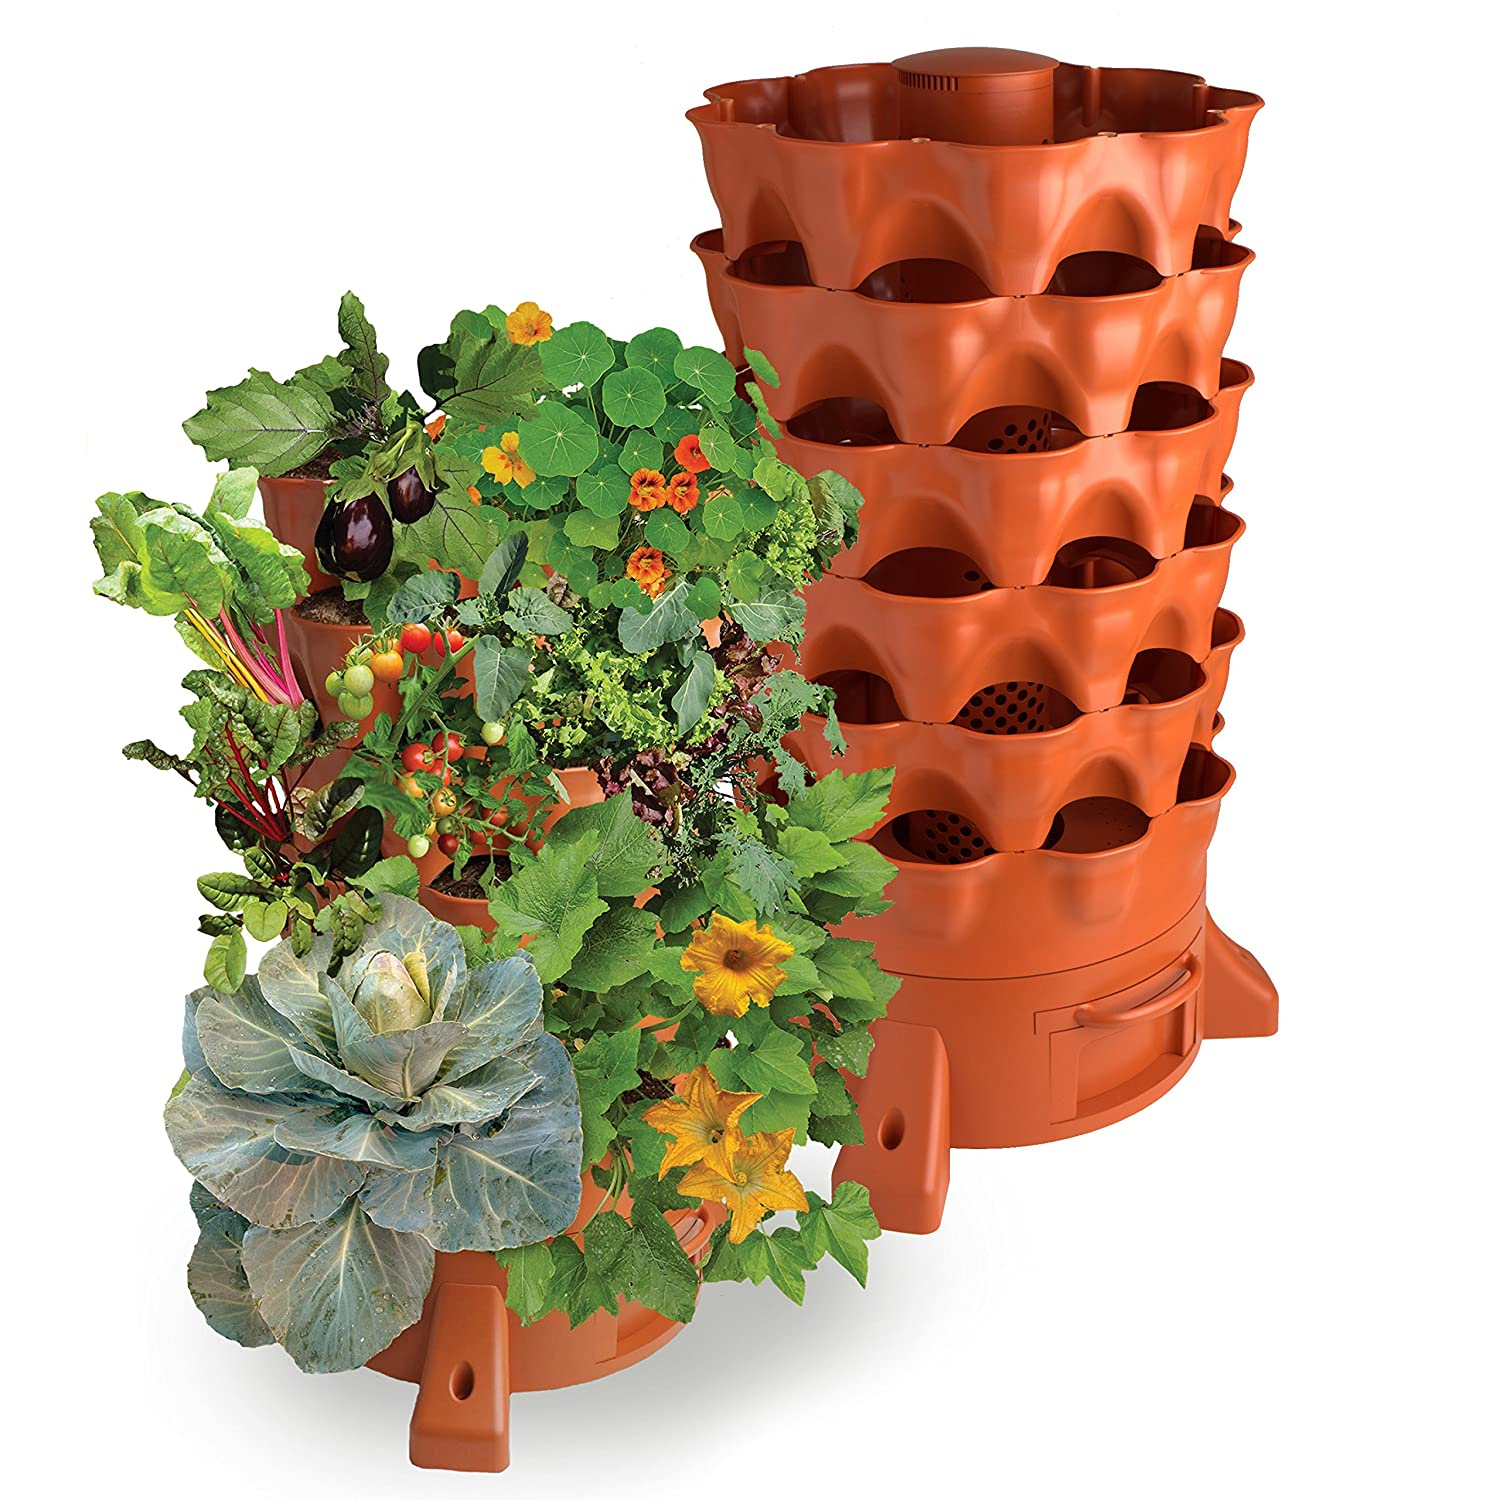 tower garden 2 composting 50 plant container - Tower Garden